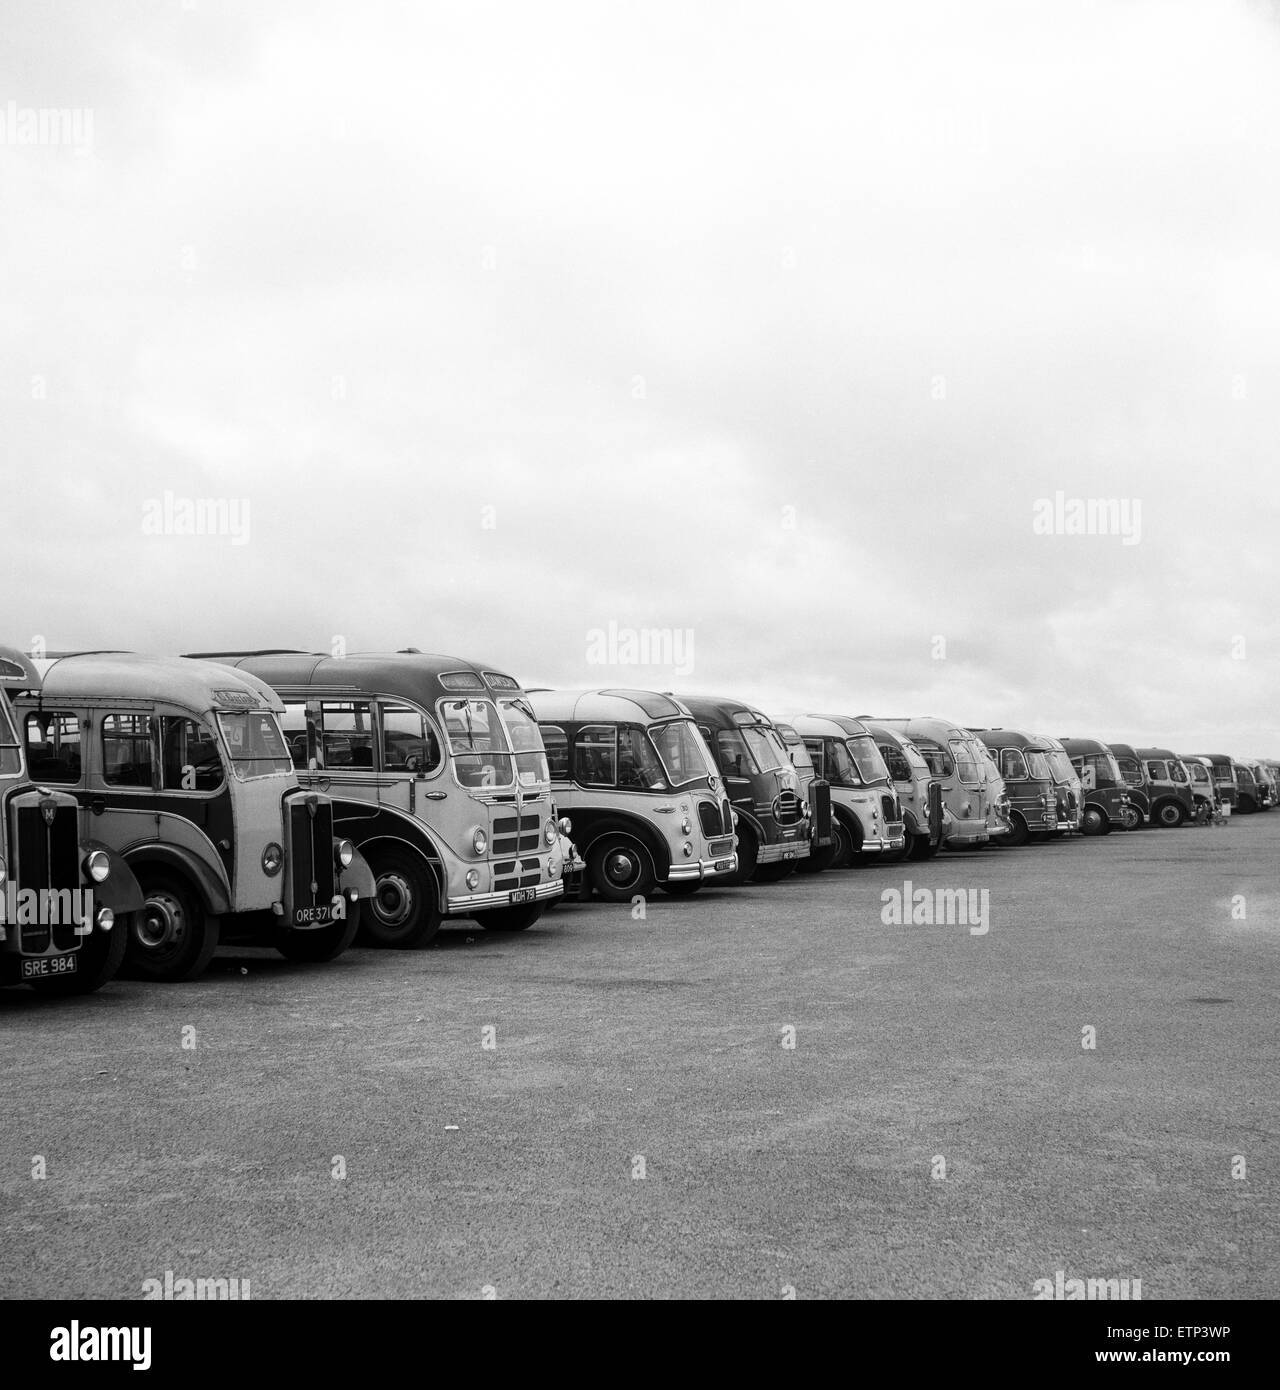 Coaches parked at Southport, Merseyside. 5th August 1959. - Stock Image